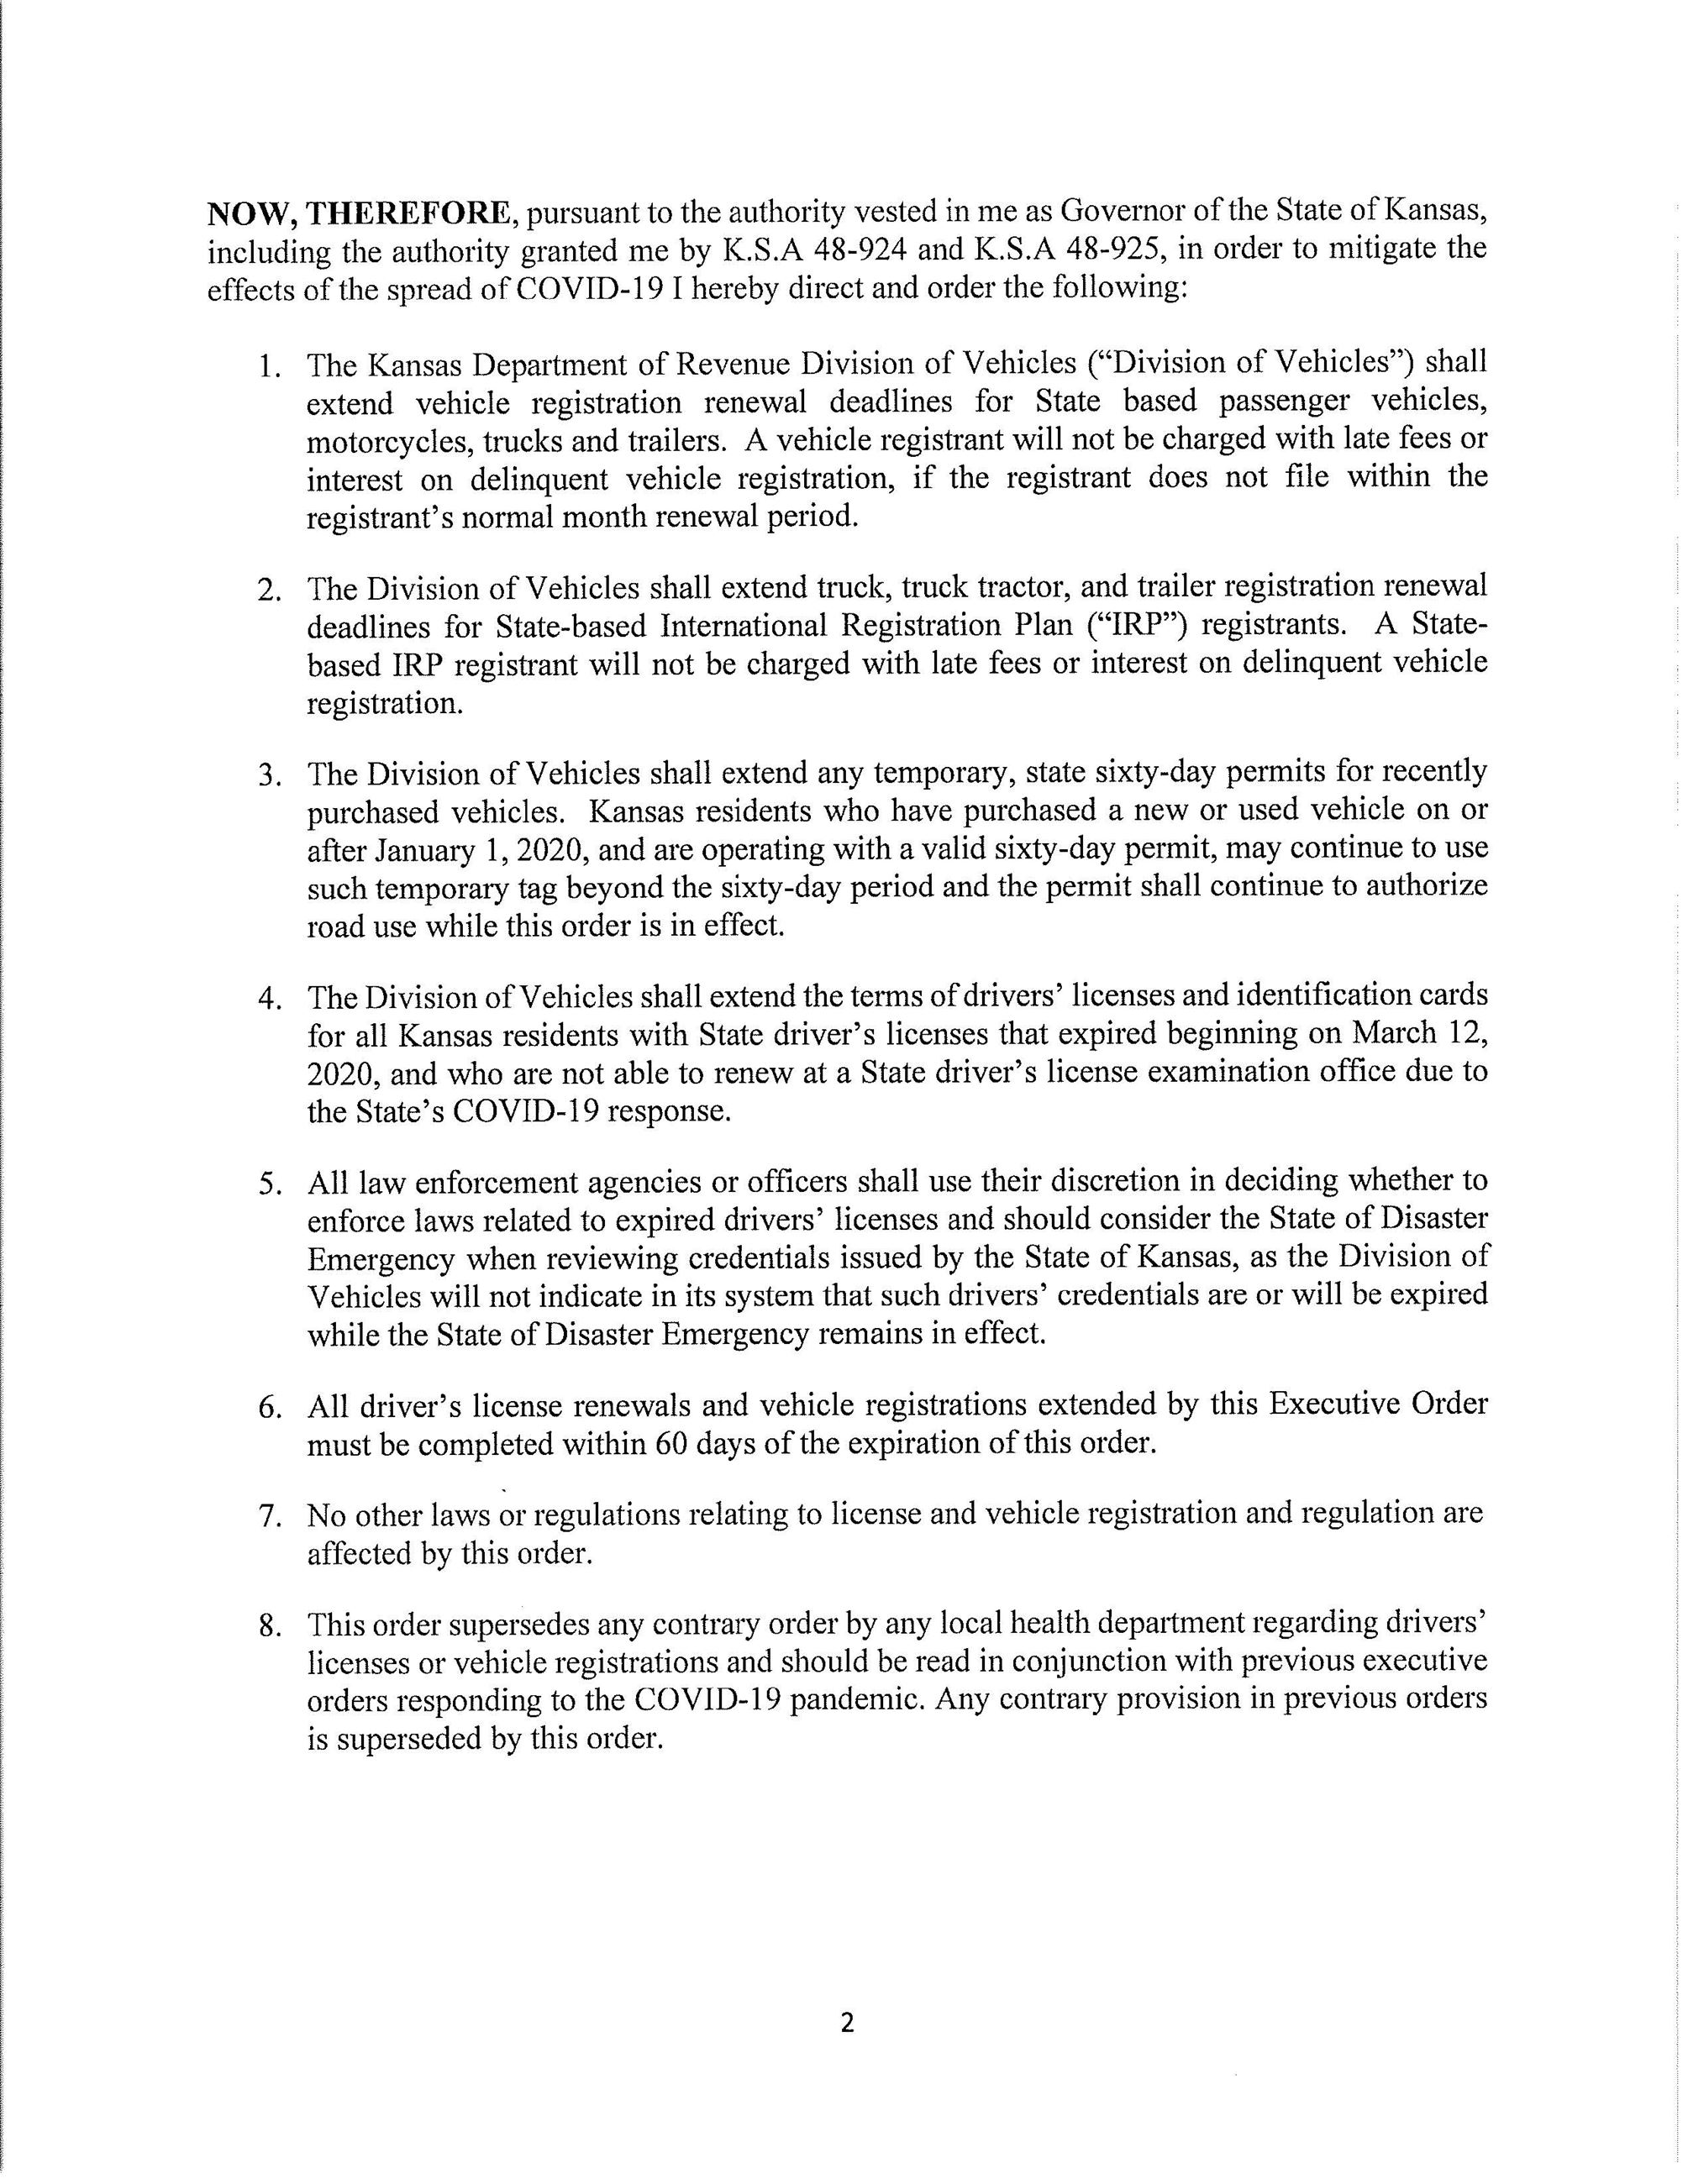 EO 20-12 Executed_Page_2_Image_0001